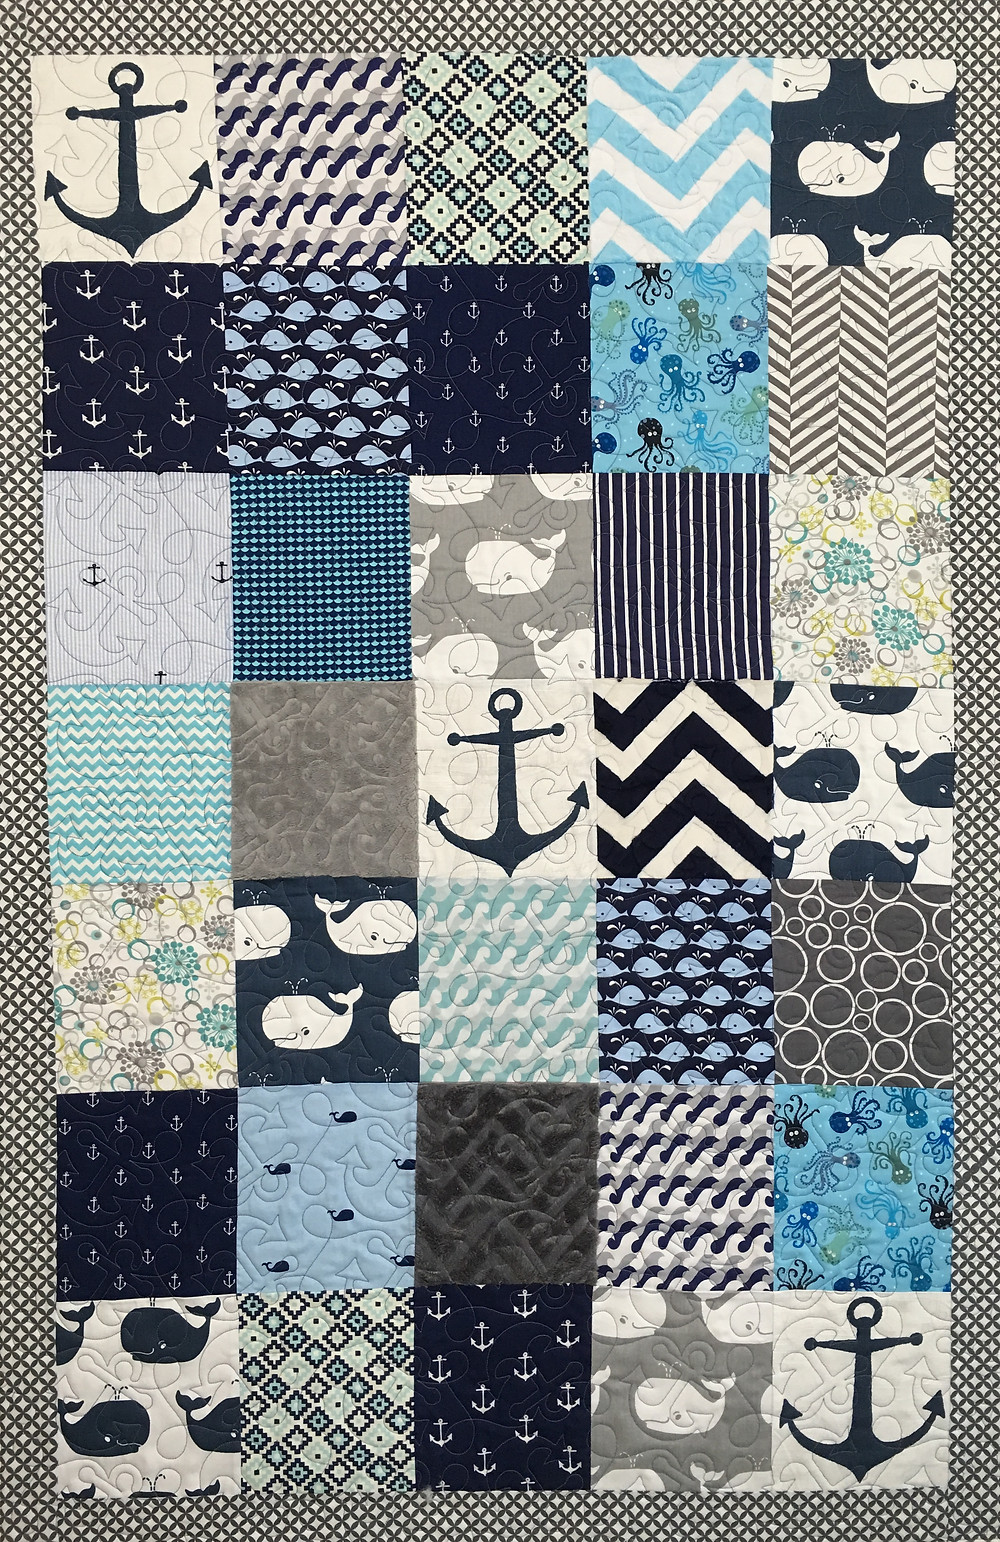 Sherryy's Nautical Baby Quilt in shades of blue